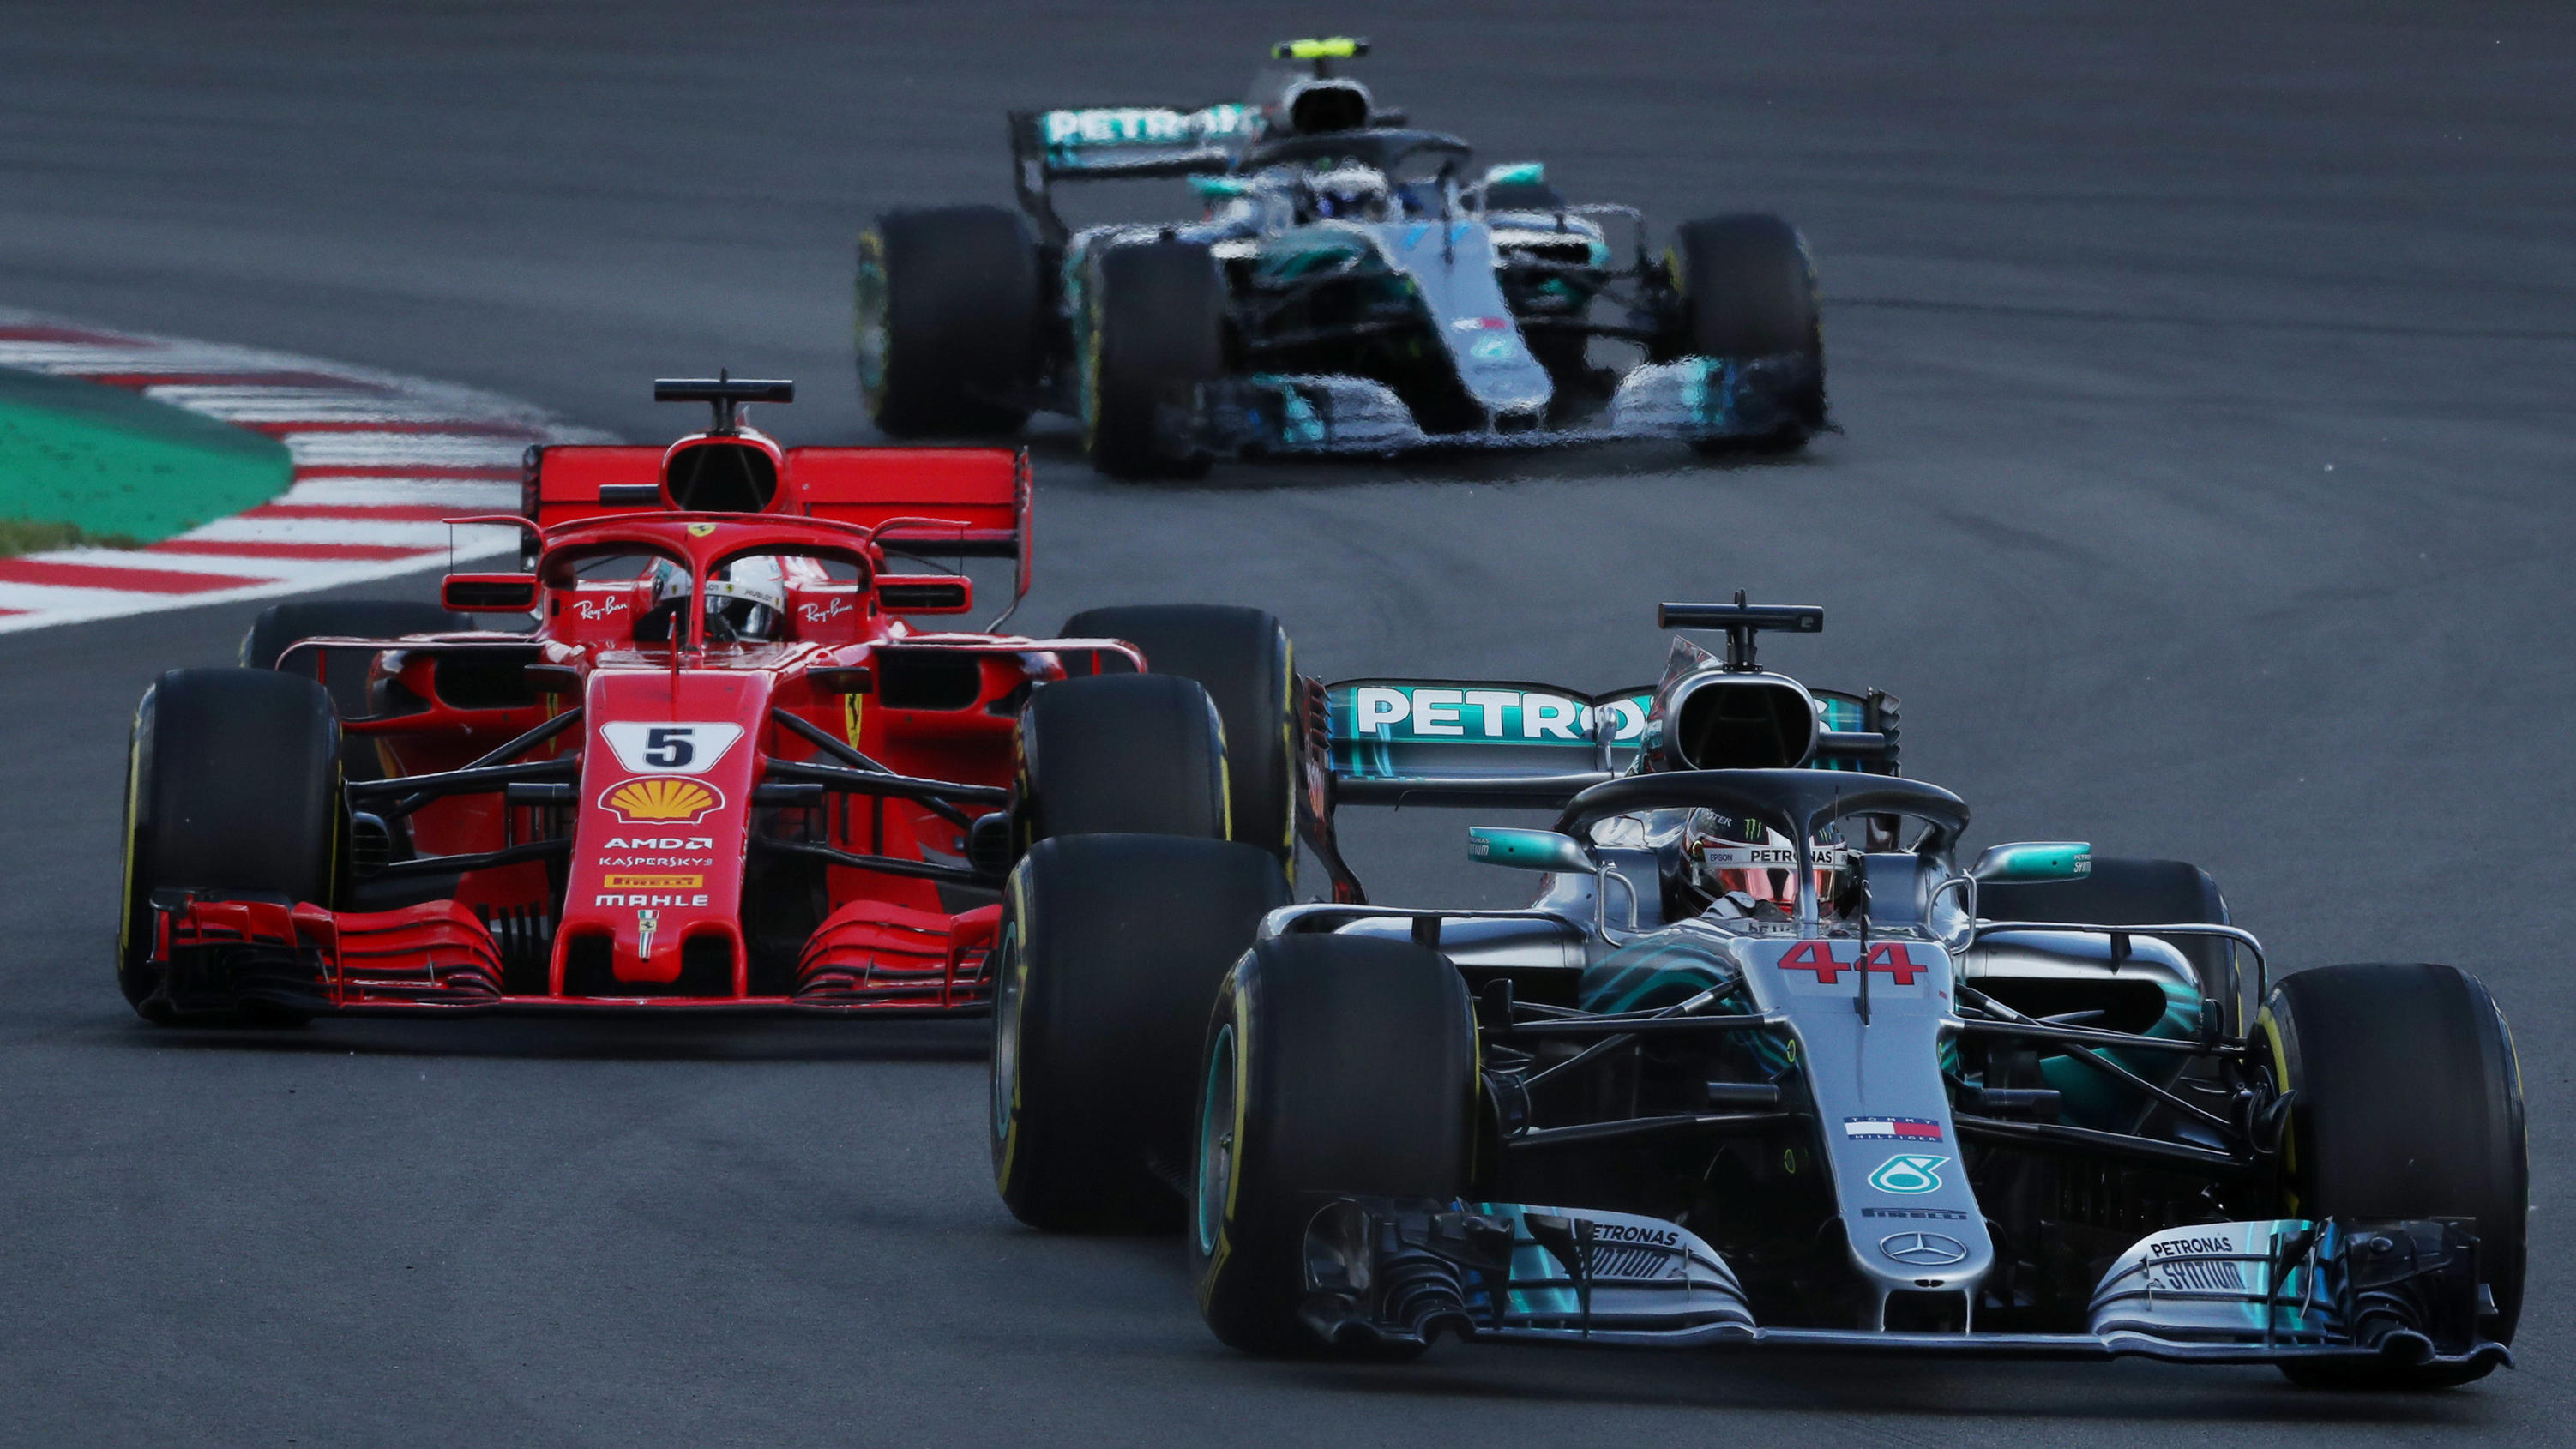 Formula One F1 - Spanish Grand Prix - Circuit de Barcelona-Catalunya, Barcelona, Spain - May 13, 2018   Mercedes' Lewis Hamilton leads Ferrari's Sebastian Vettel and Mercedes' Valtteri Bottas behind the safety car (not pictured) during the seco